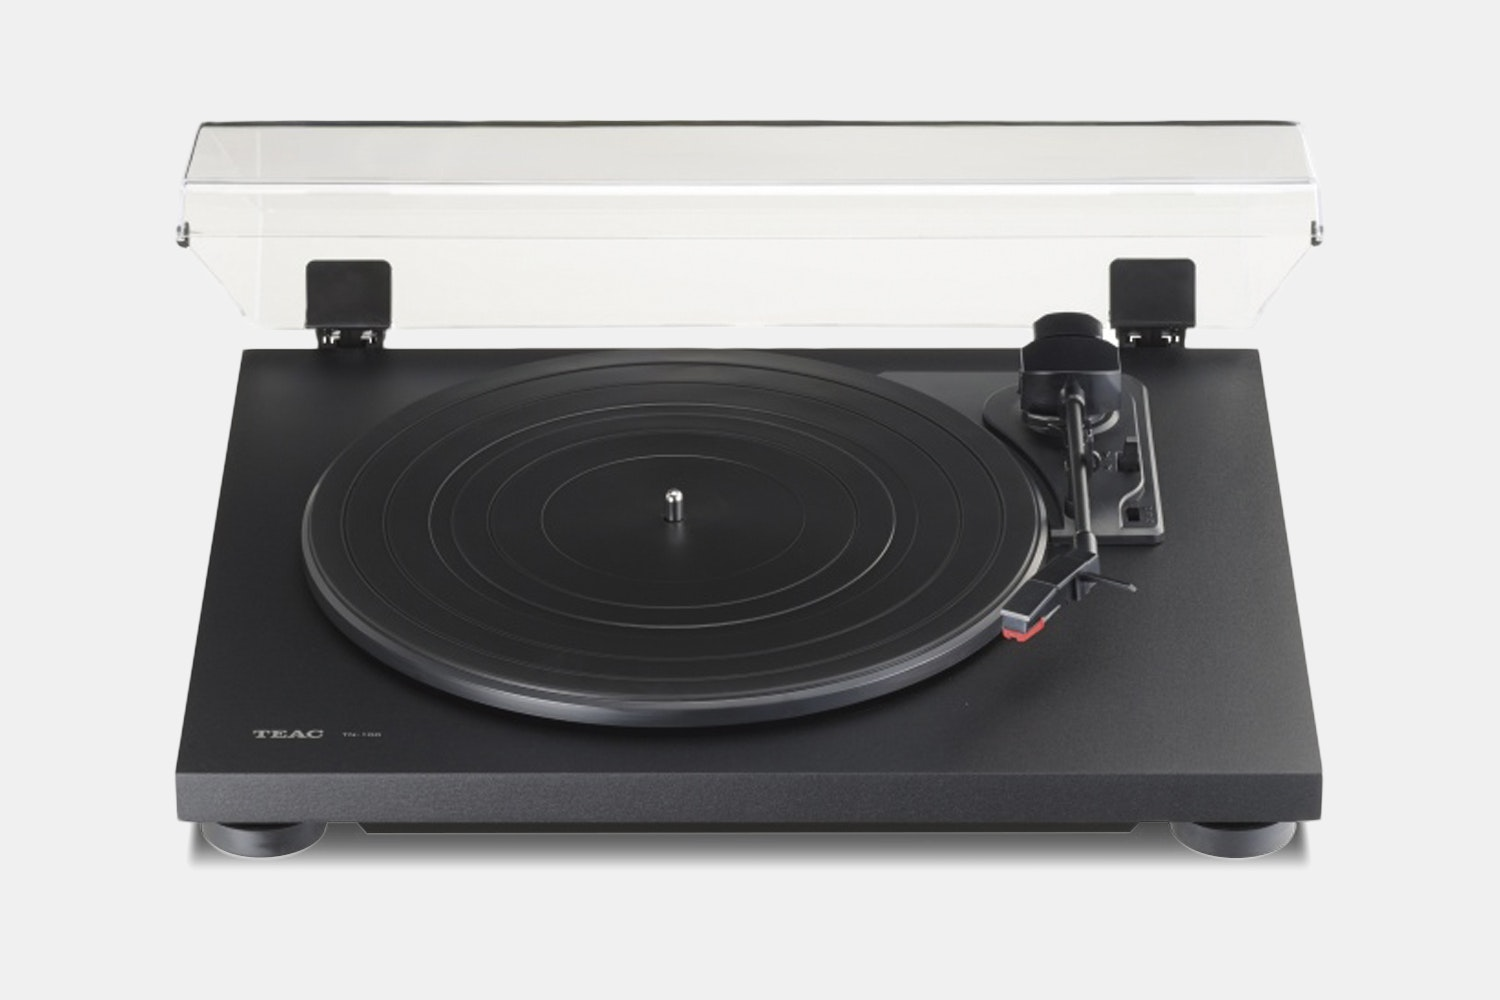 TEAC TN-100 Turntable & LS-M100 Speakers